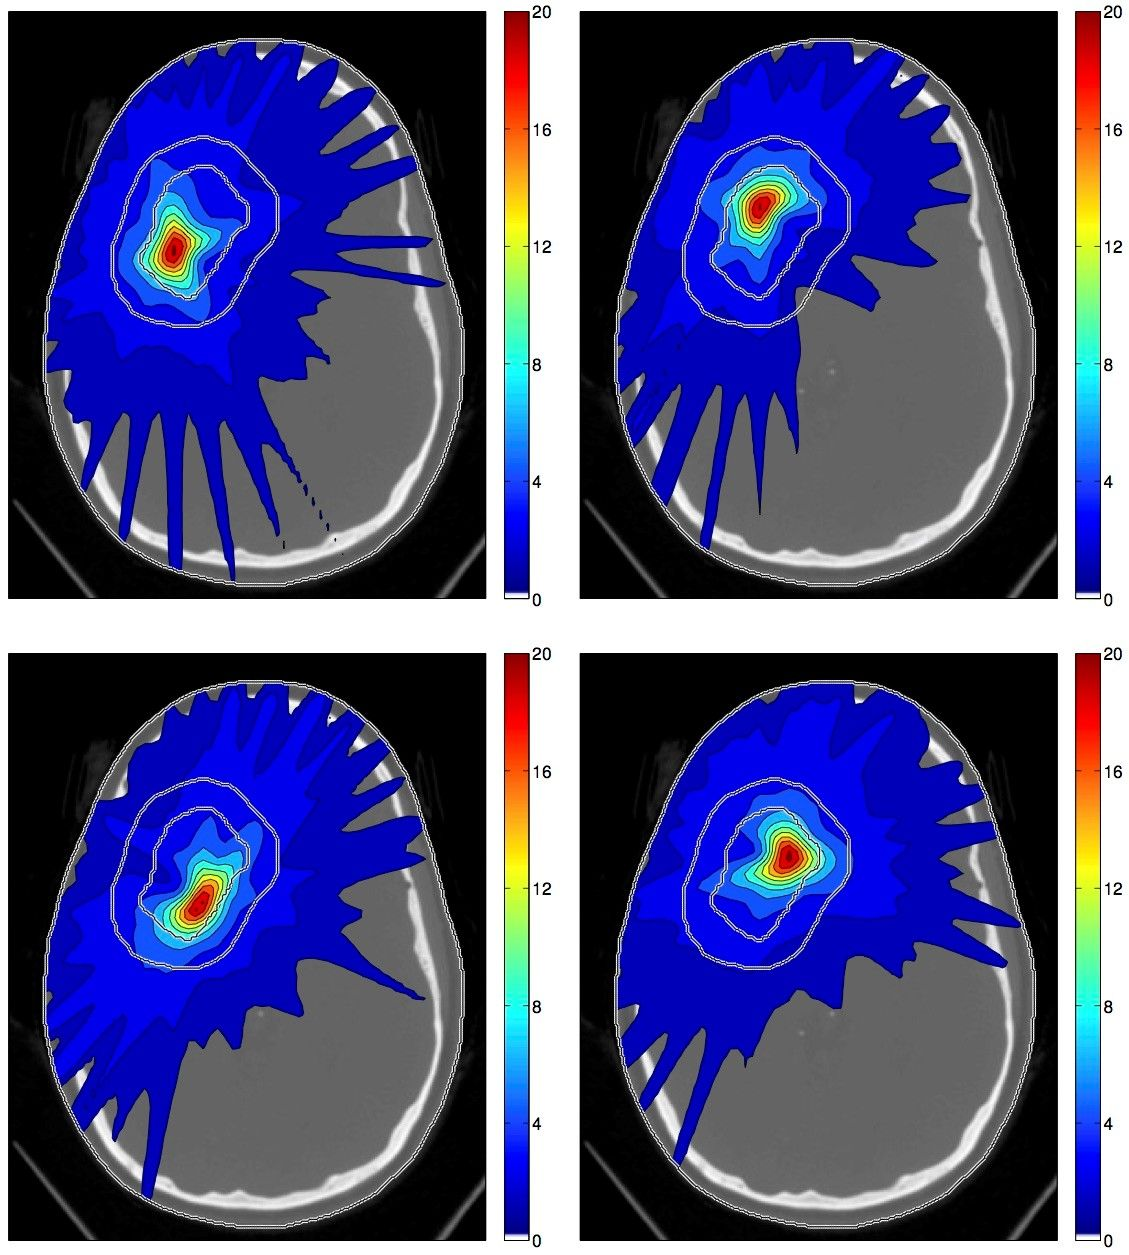 Spatiotemporal treatment plan for a large cerebral AVM